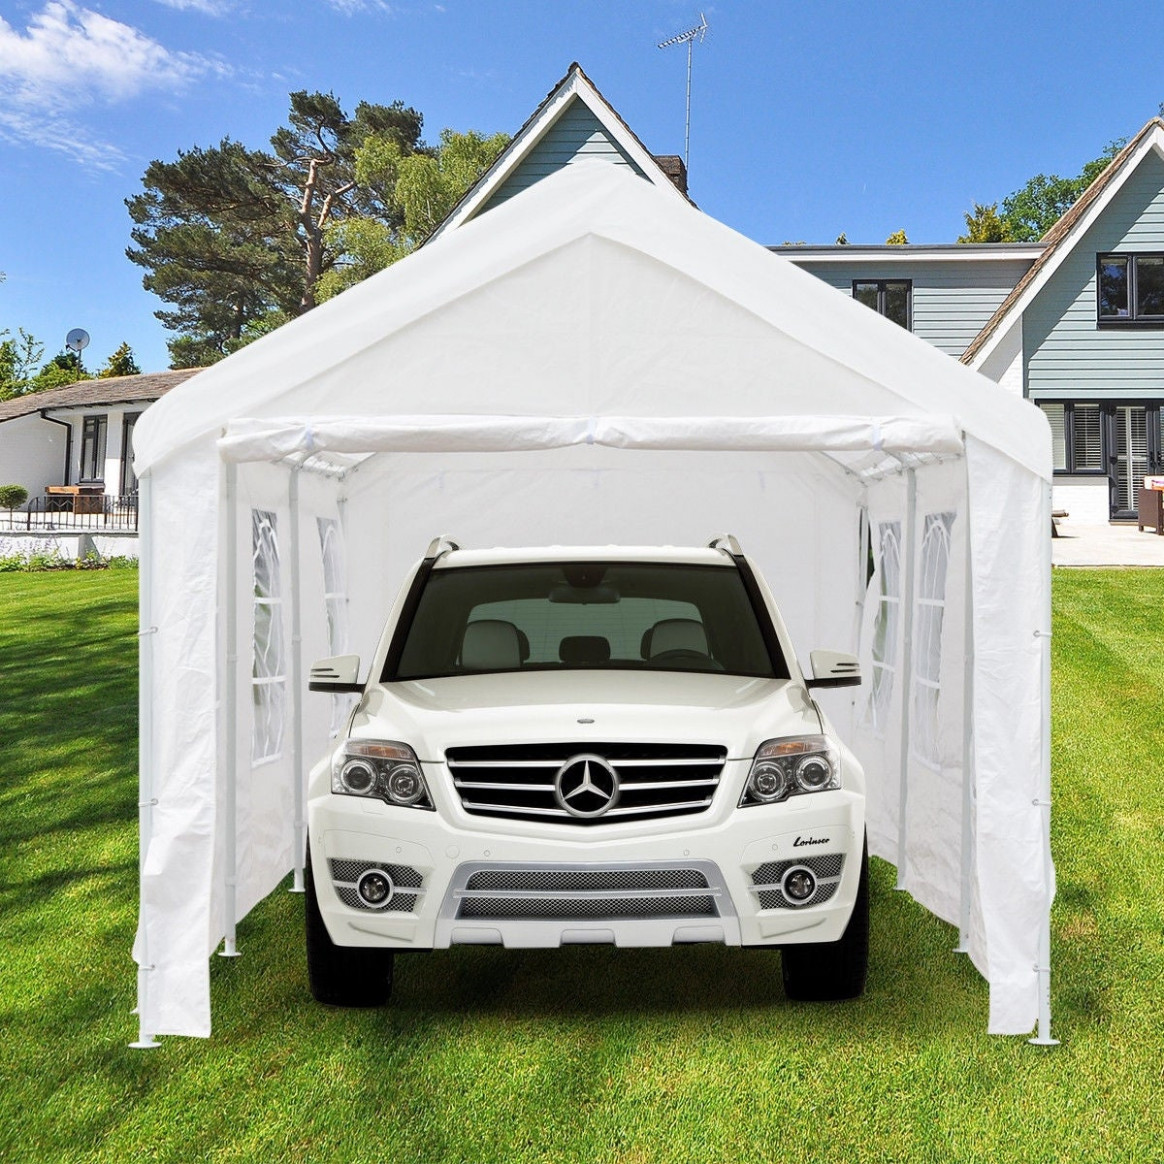 Gymax 8' X 8' Heavy Duty Party Wedding Tent Car Carport Canopy Garage Cover Shelter Carport Or Canopy